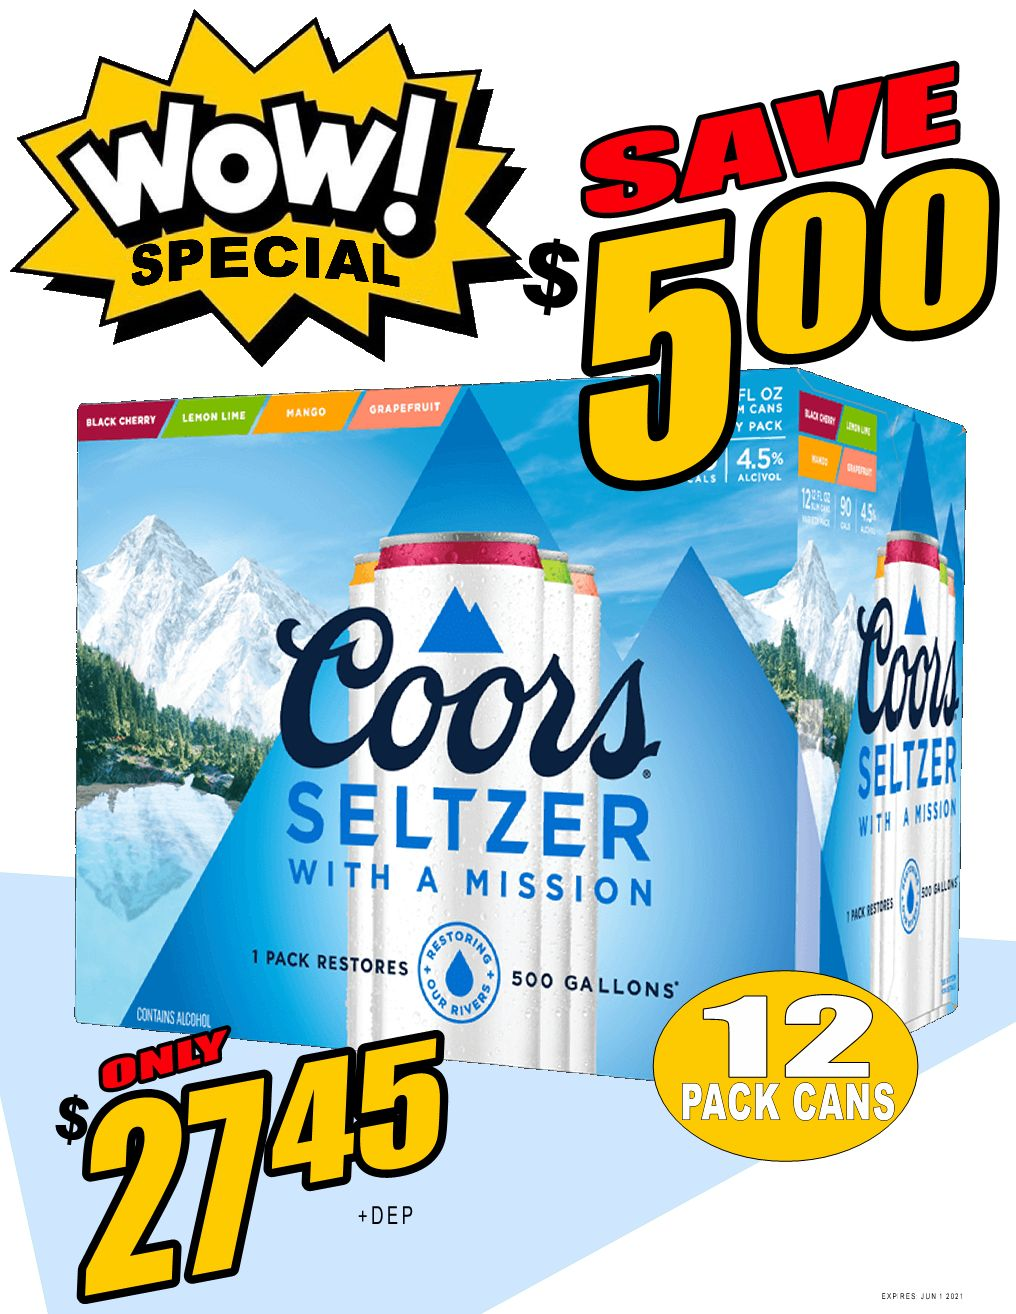 WOW DEAL!! Coors Seltzer Mixer - 12Pk can - Save $5.00!! WOW DEAL!!